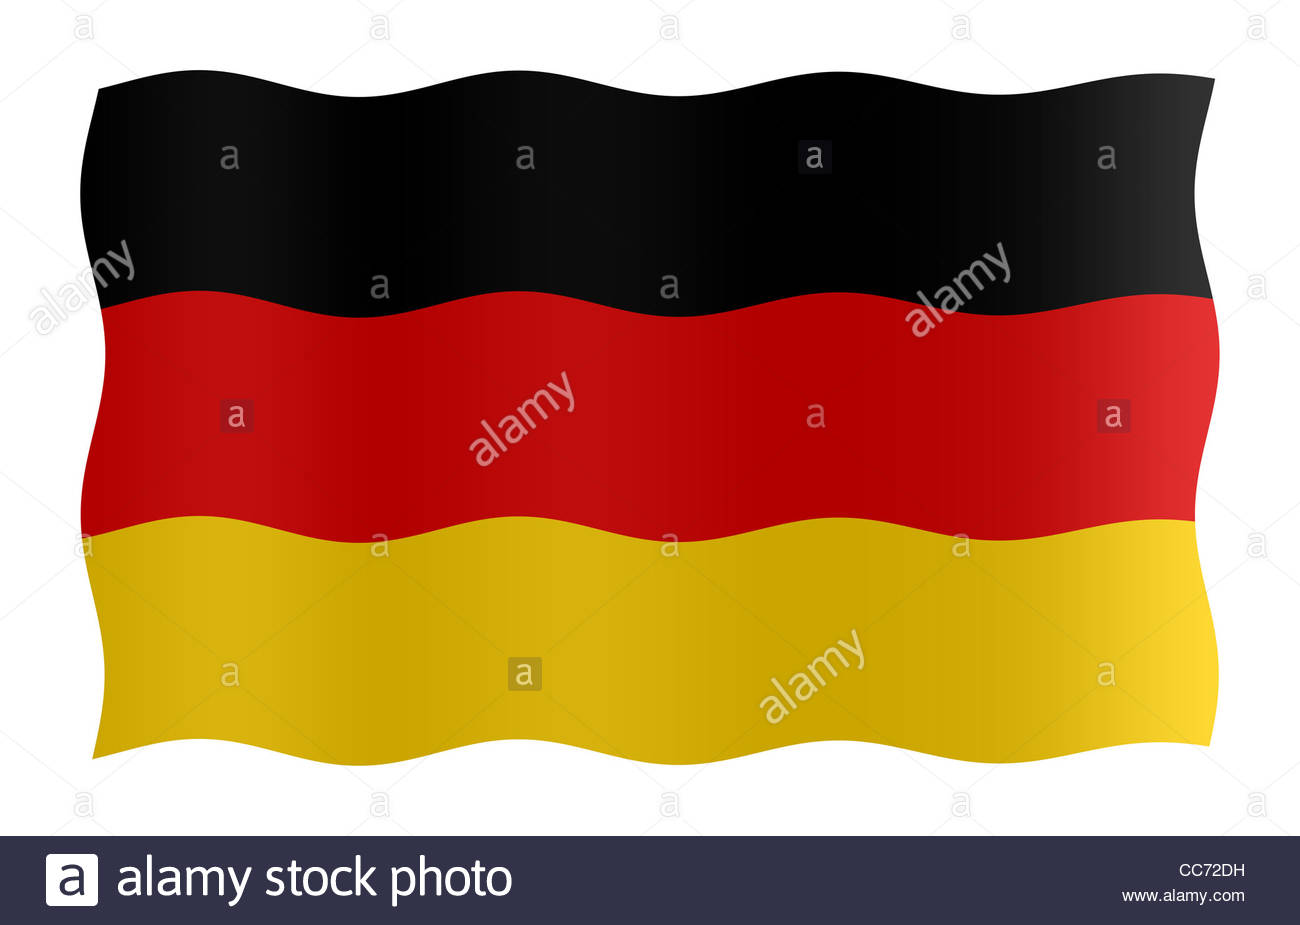 Digital Illustration - flag of Germany - Stock Image